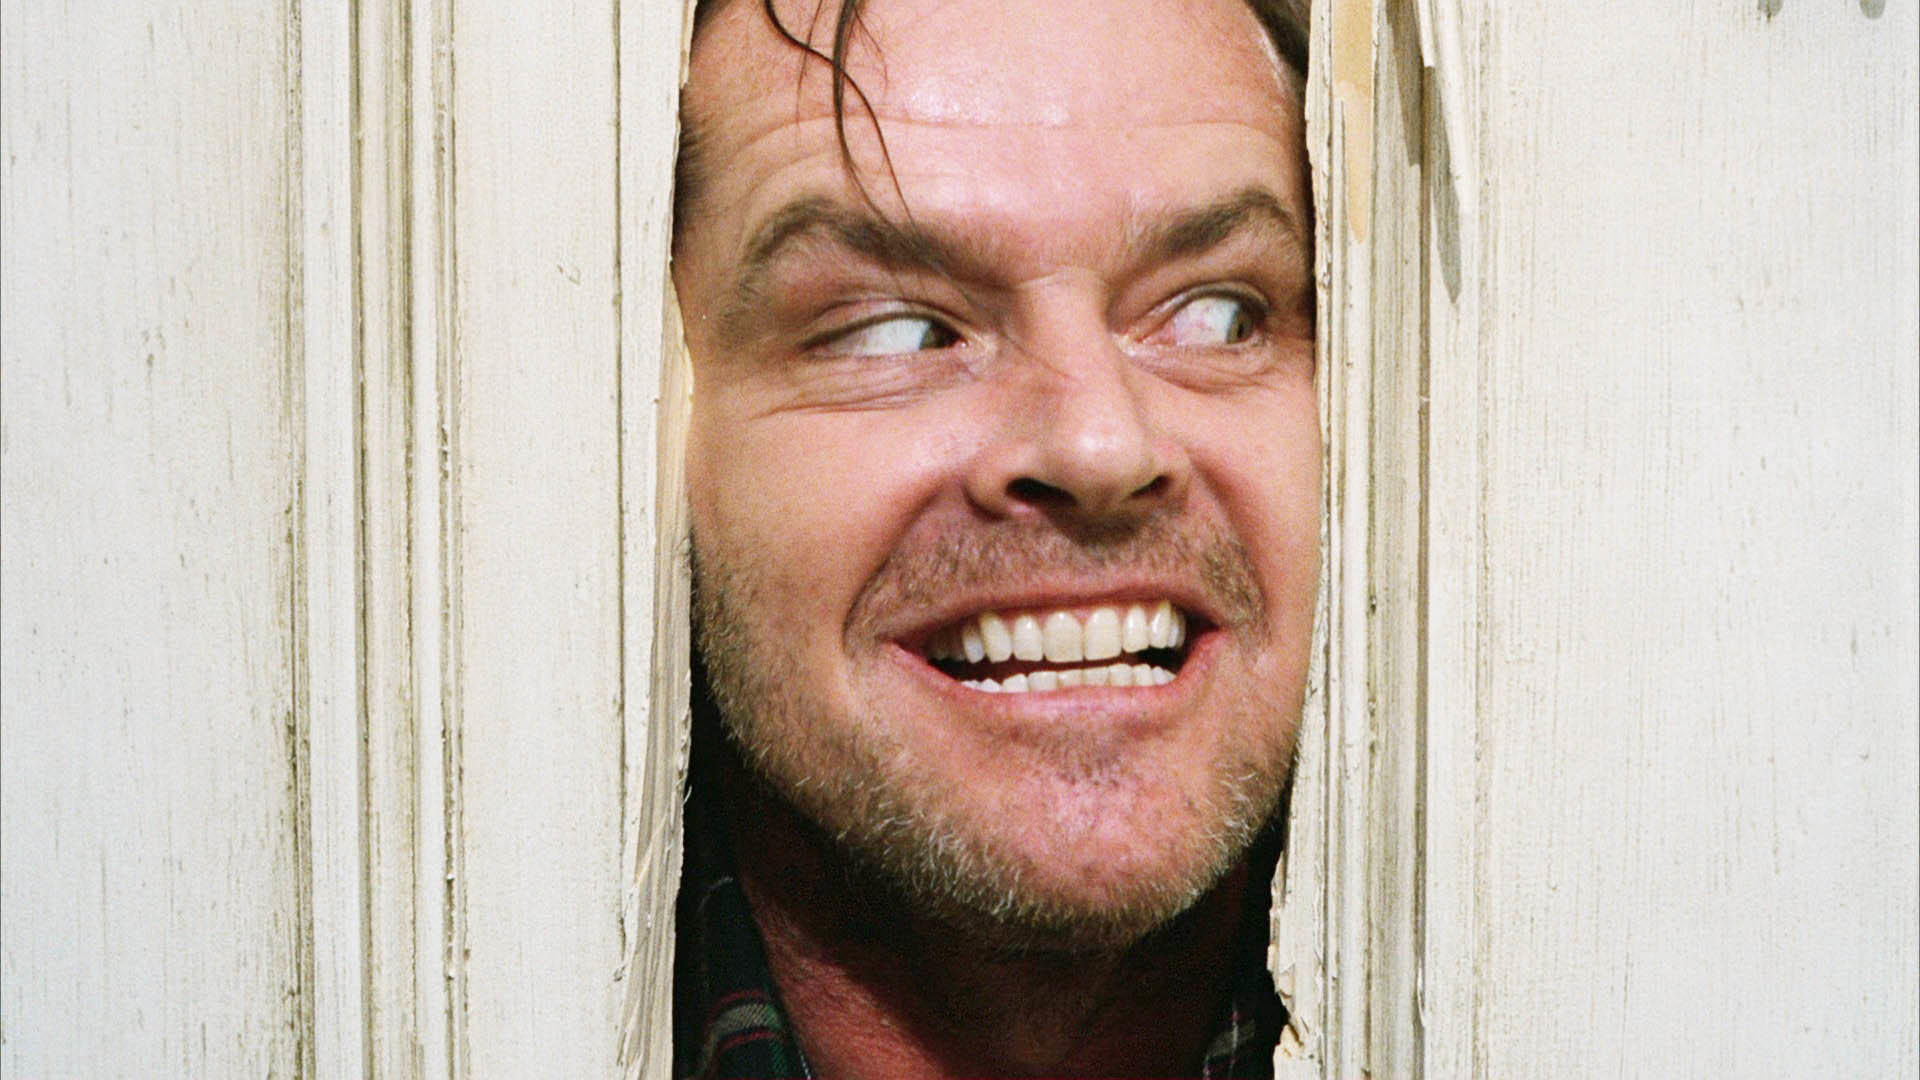 Jack Nicholson The Shining Quotes. QuotesGram